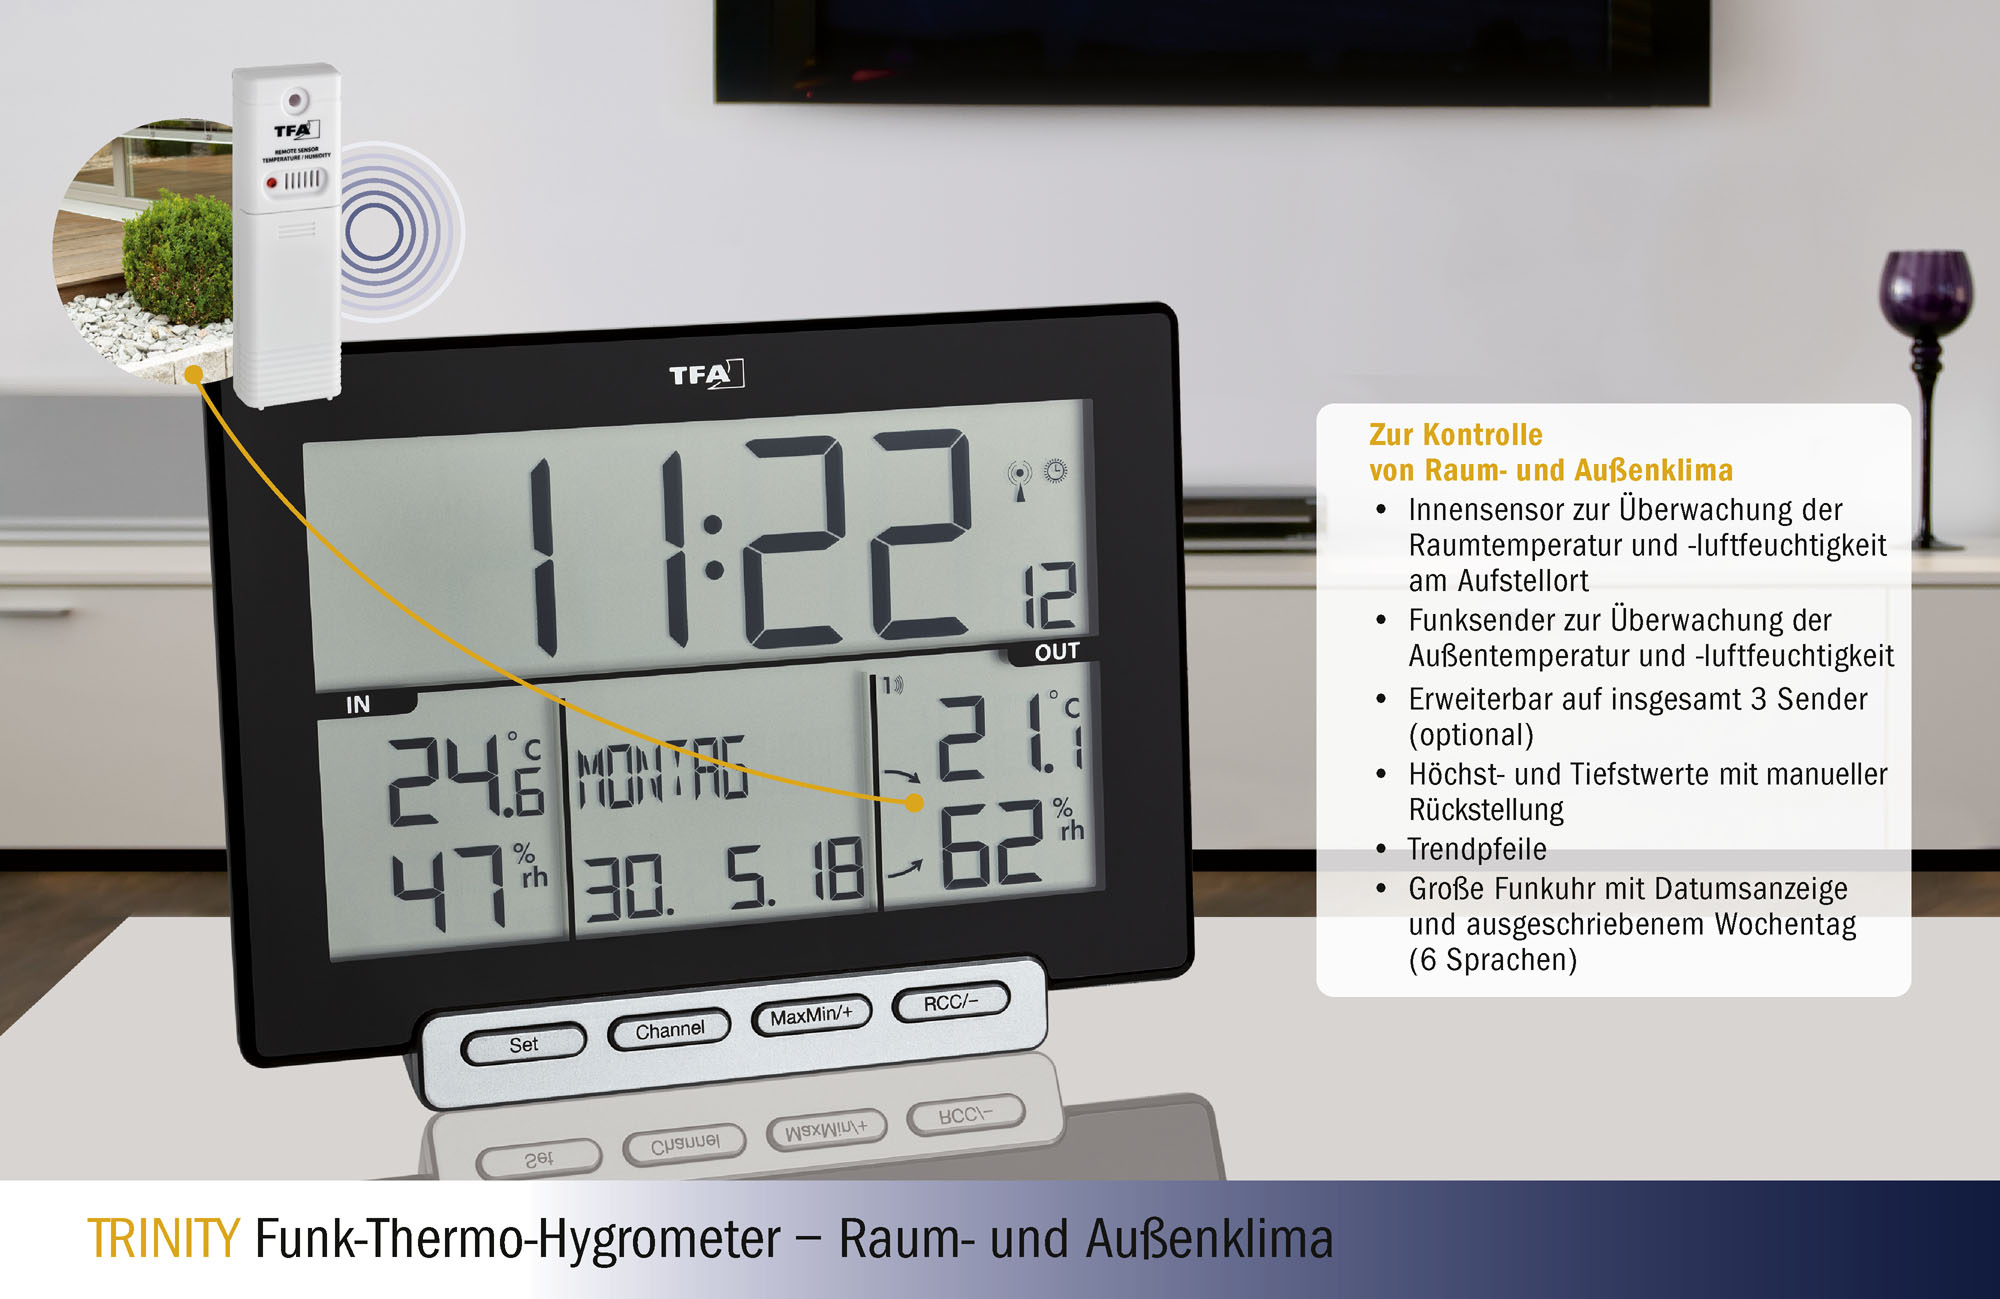 Thermo-Hygrometer_digital_303058_Vorteile.jpg